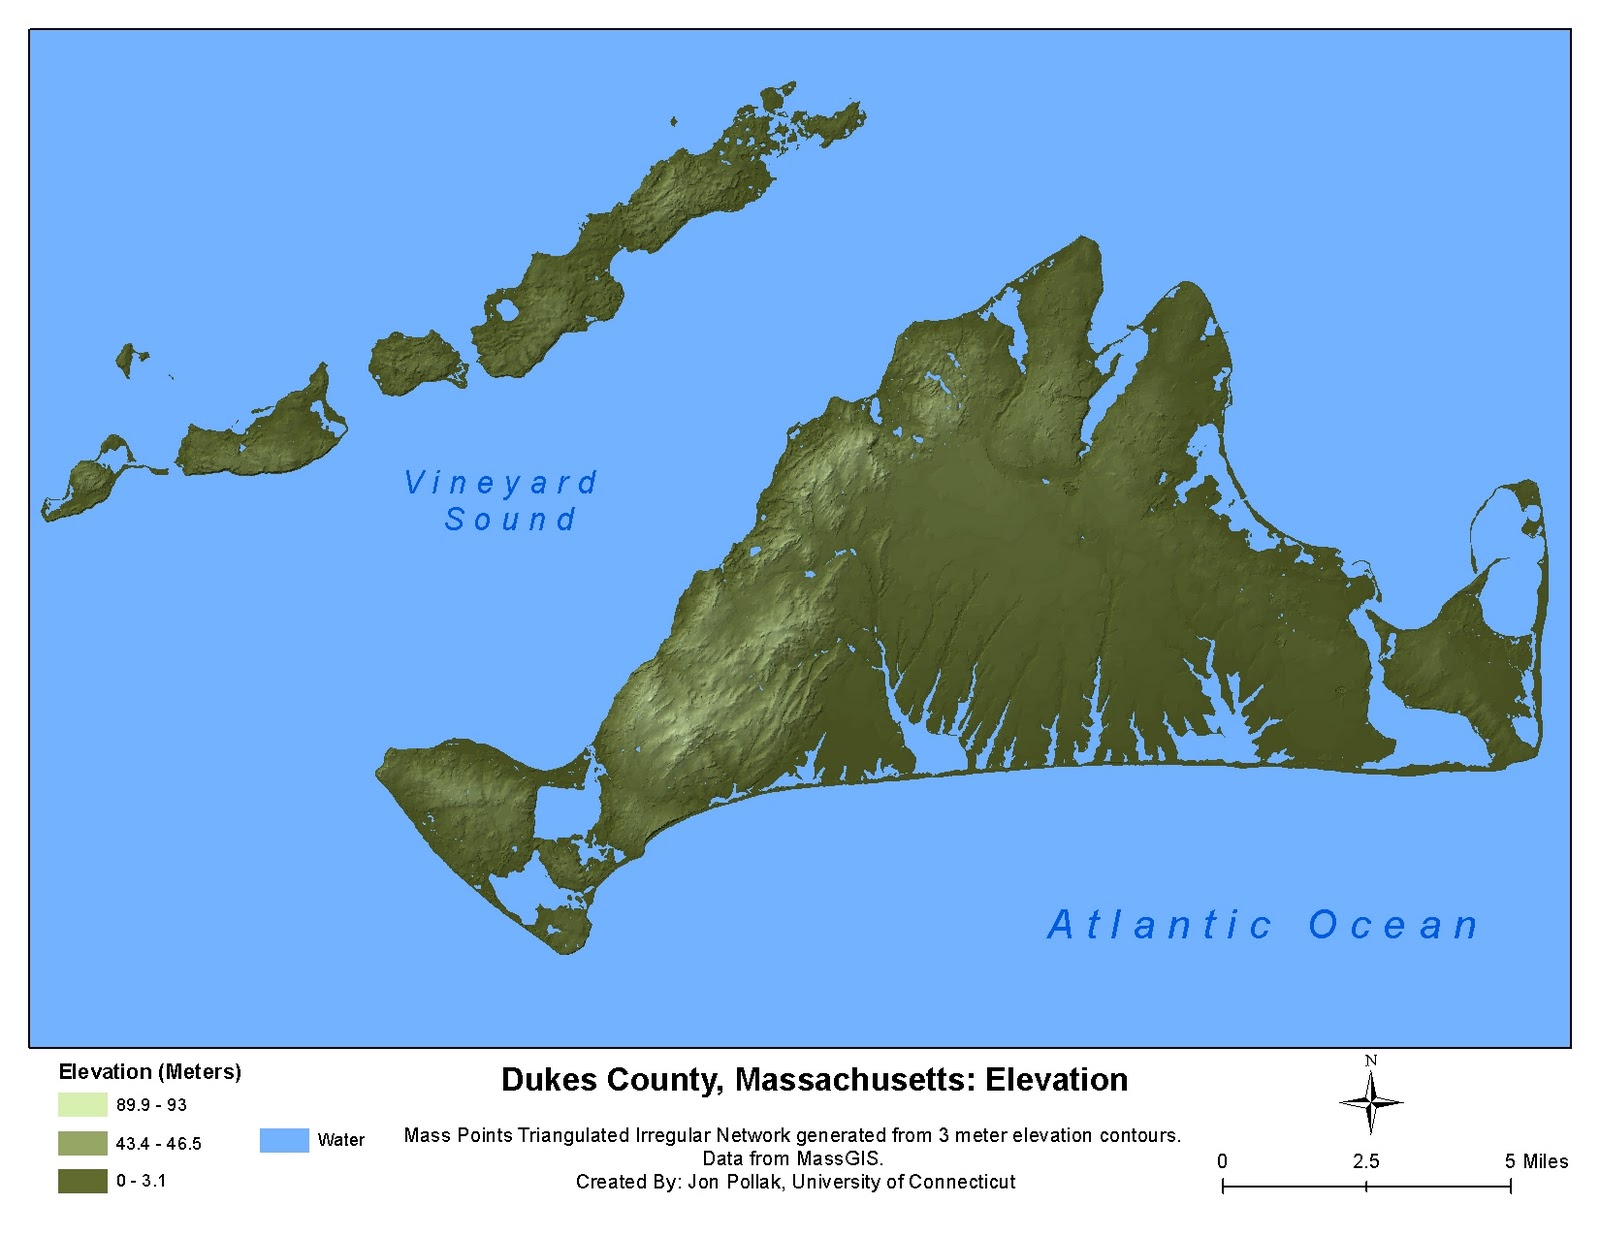 Modeling The Elevation Of Marthas Vineyard In ArcGIS Outside - What is my sea level elevation